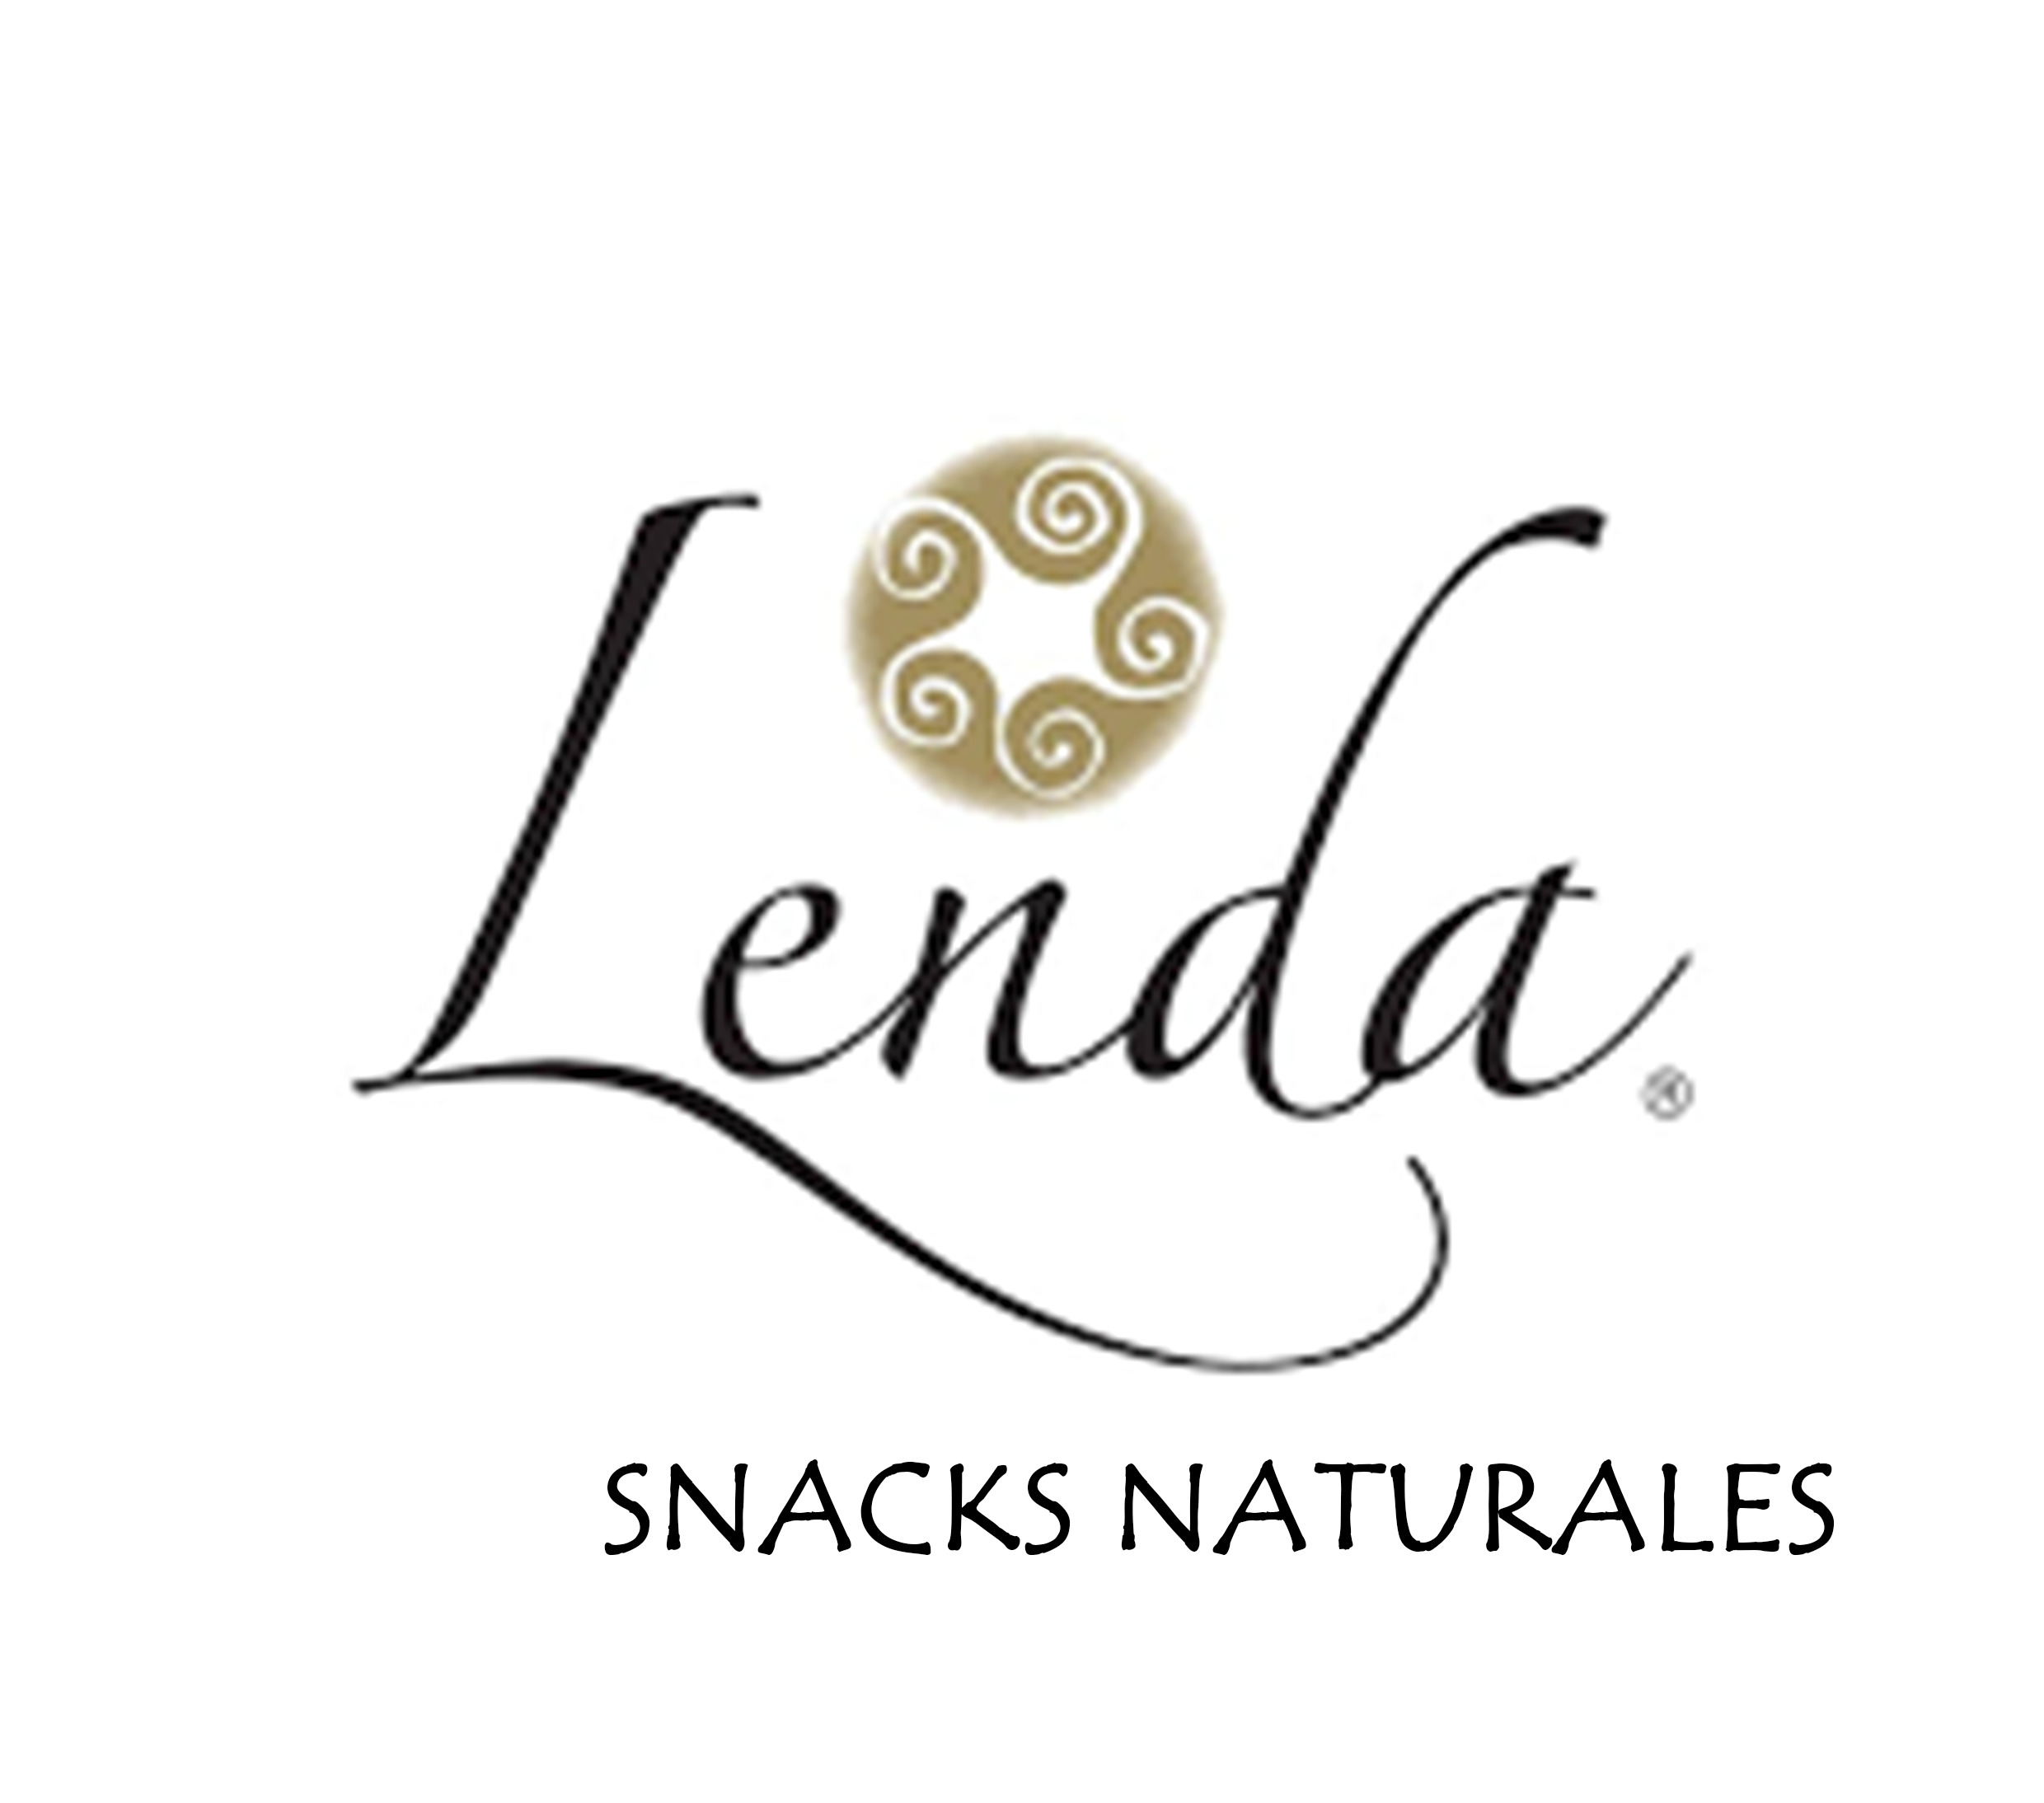 Snacks naturales